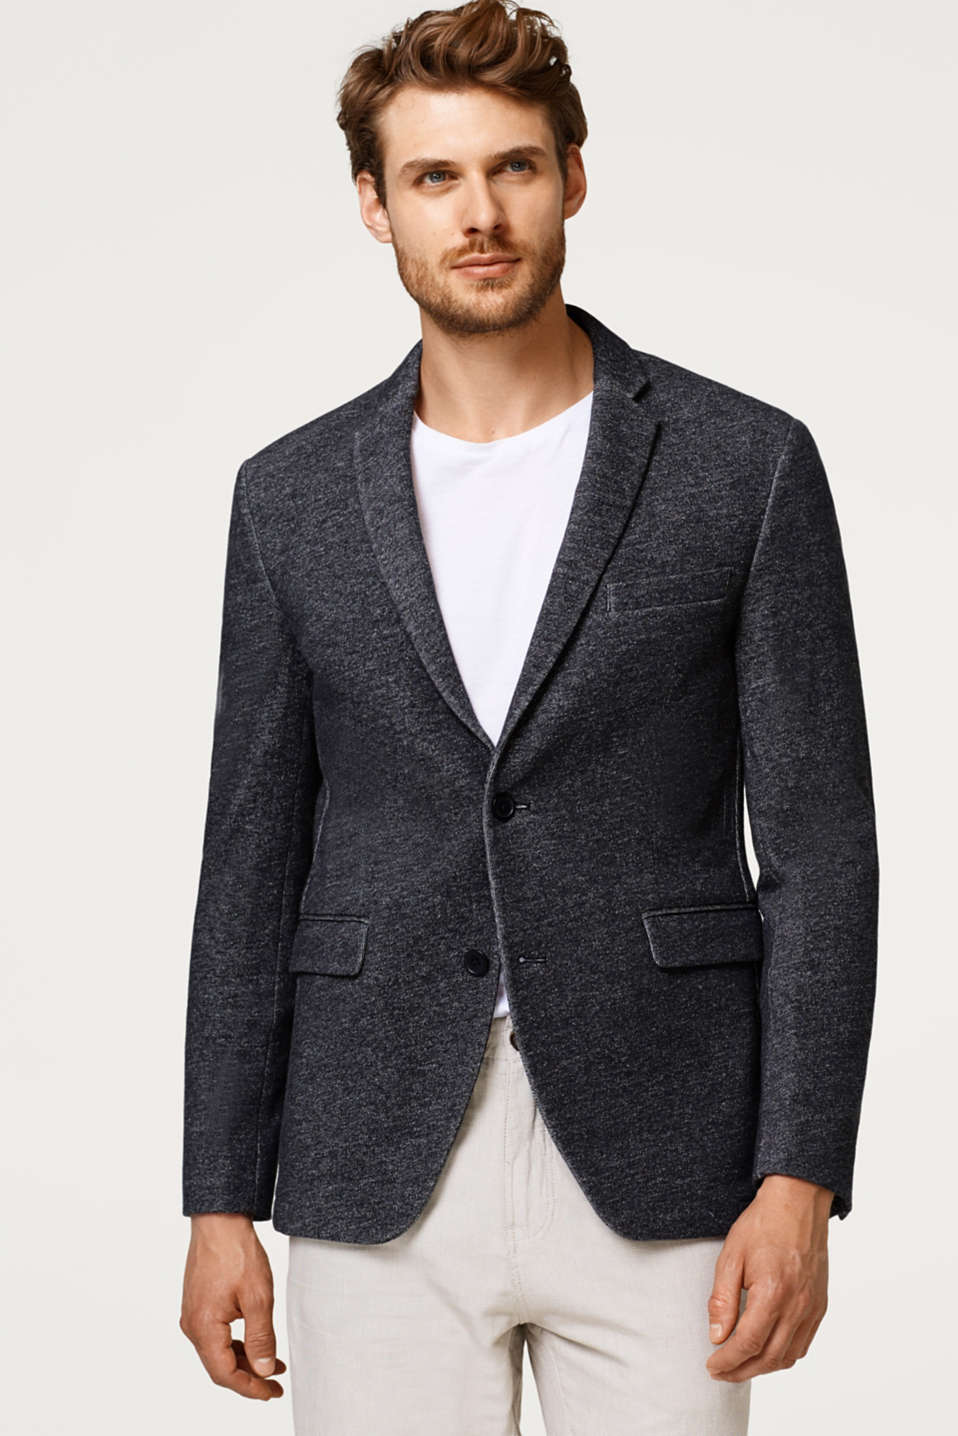 Esprit - Mens blazer made of melange sweatshirt fabric, 100% cotton